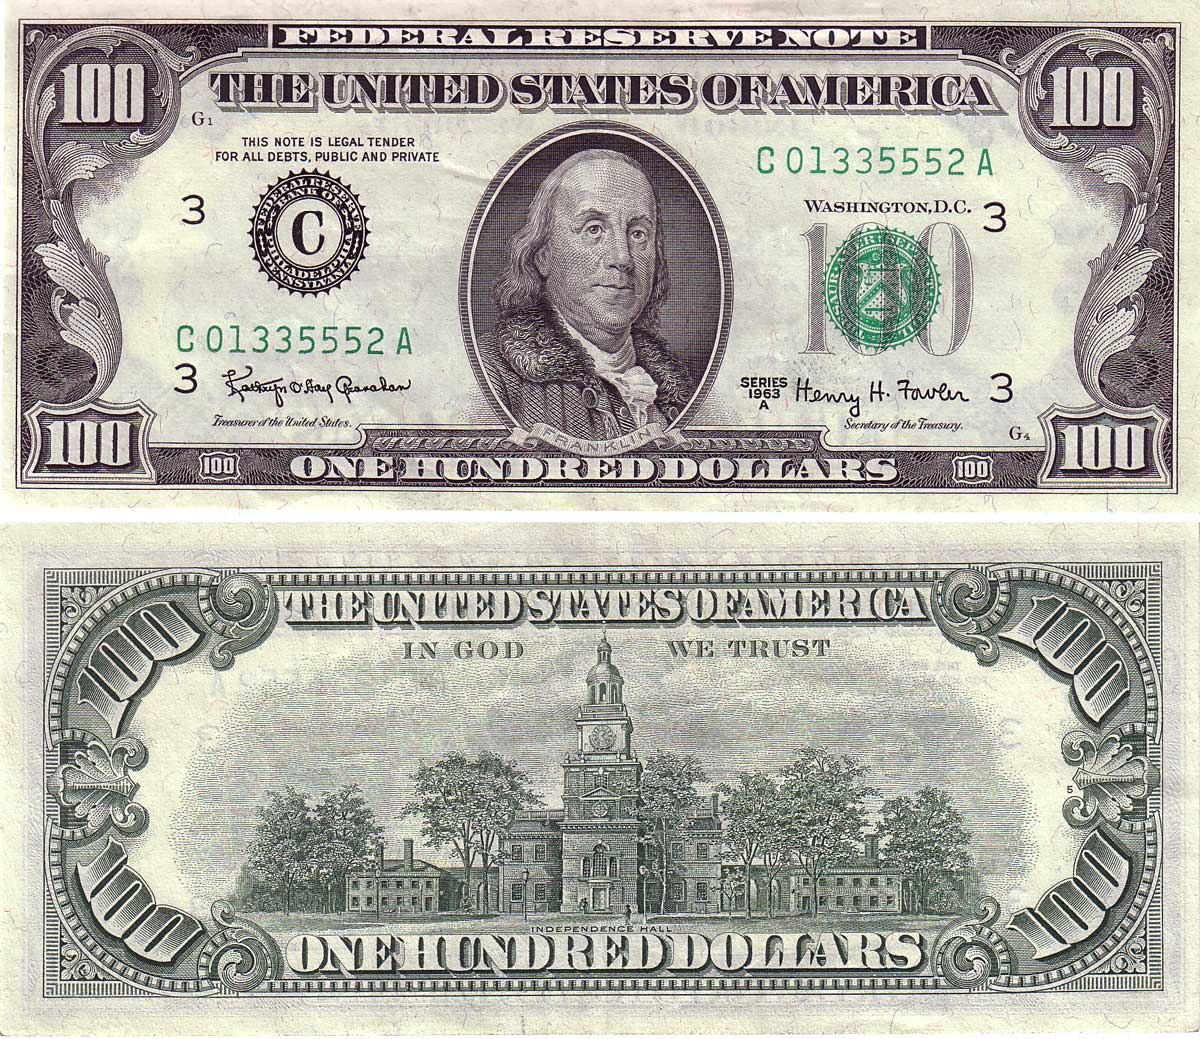 1977 100 dollar bill security features - Series 1969 Went Into Production In The Middle Of That Year Using The New 1969 Date Because The Modern English Language Treasury Seal Was Adopted For That